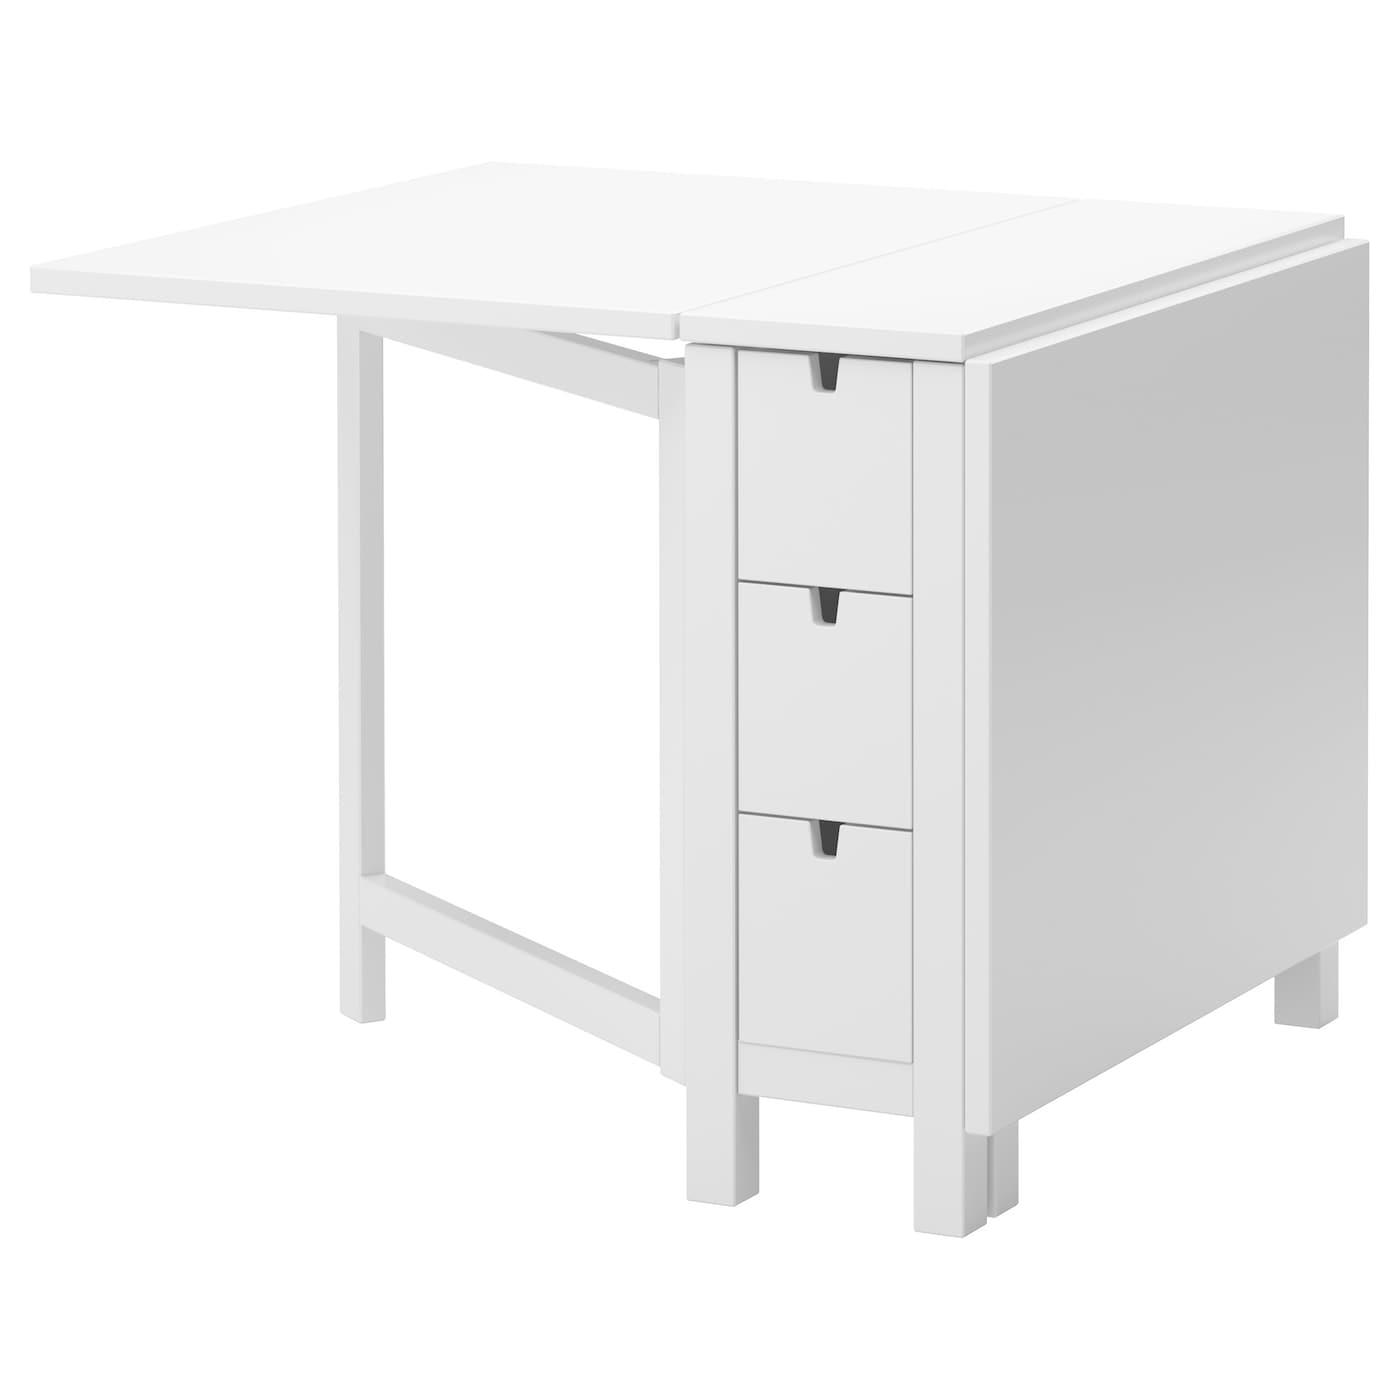 norden gateleg table white 26 89 152x80 cm ikea. Black Bedroom Furniture Sets. Home Design Ideas